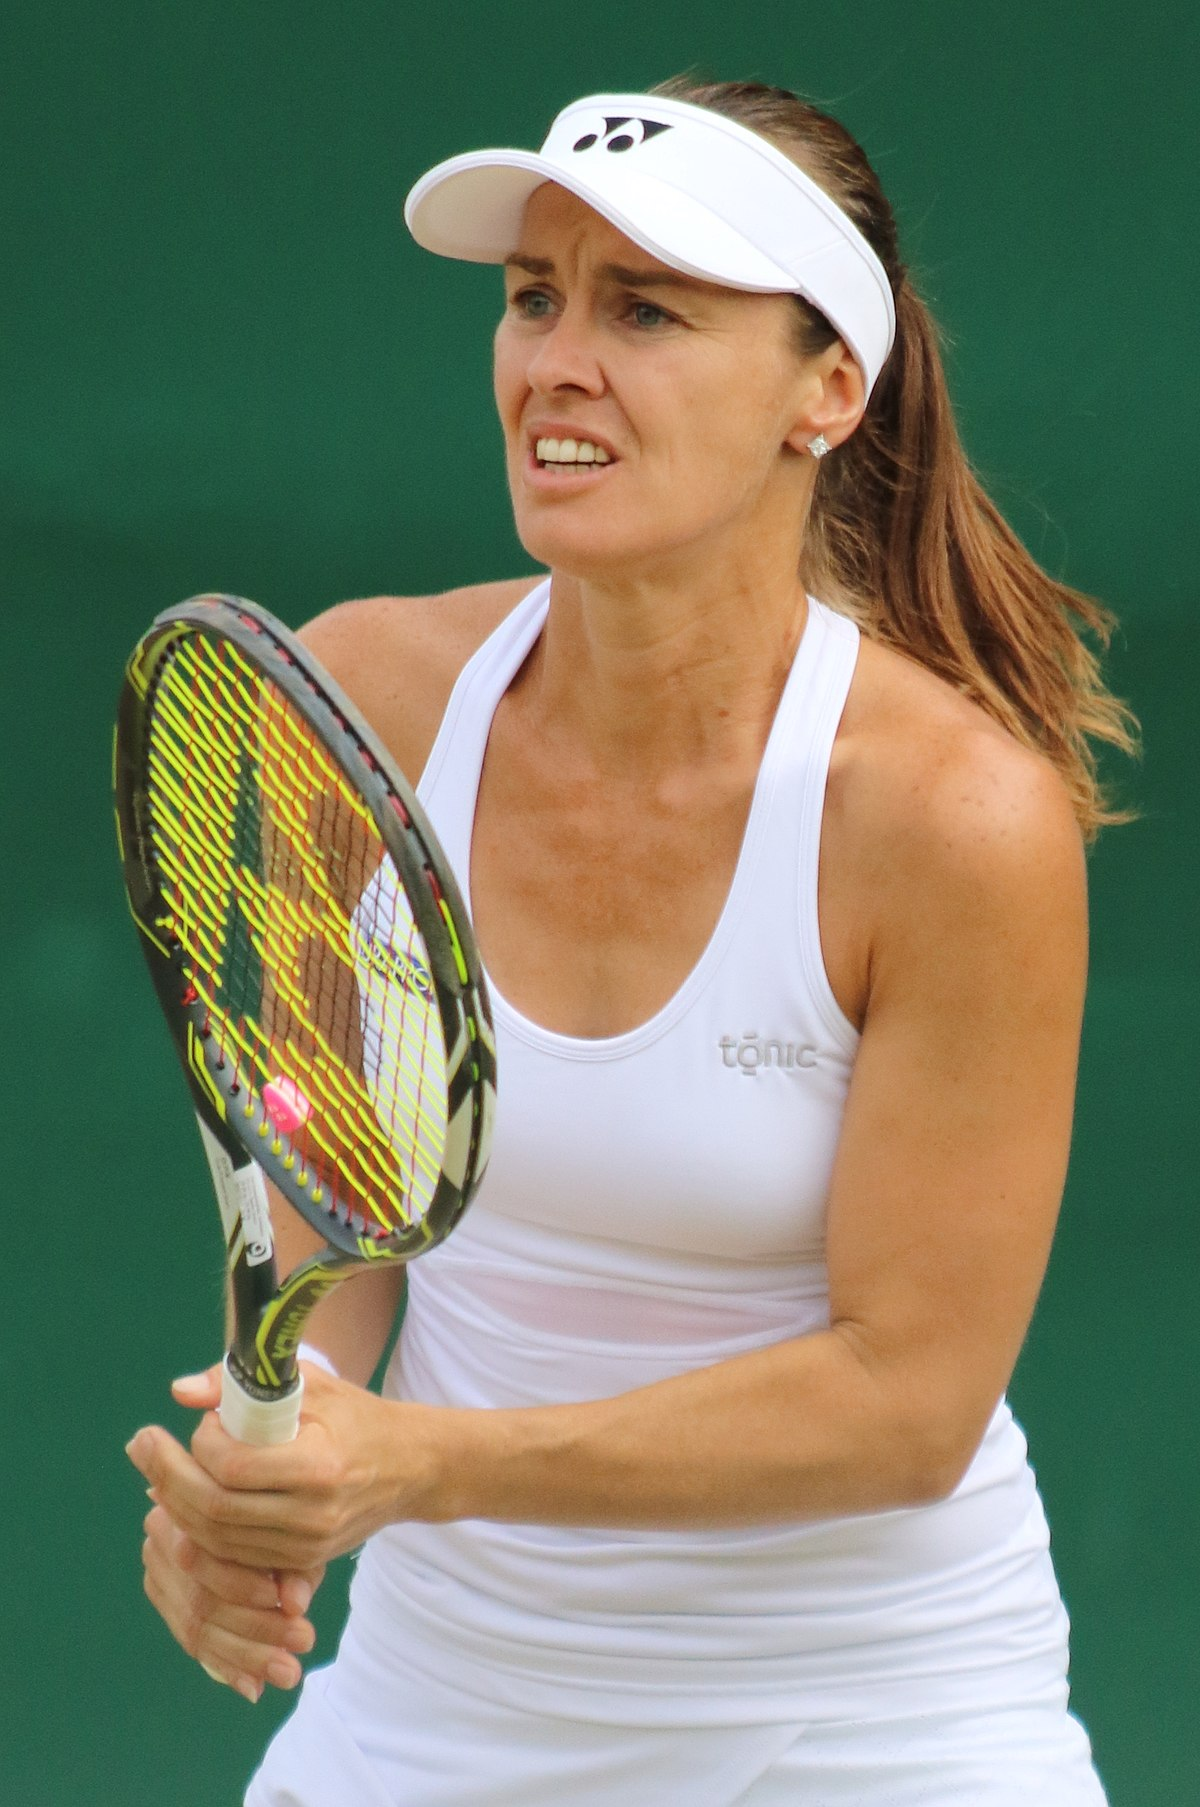 tennis martina hingis Find great deals on ebay for martina hingis auto shop with confidence.